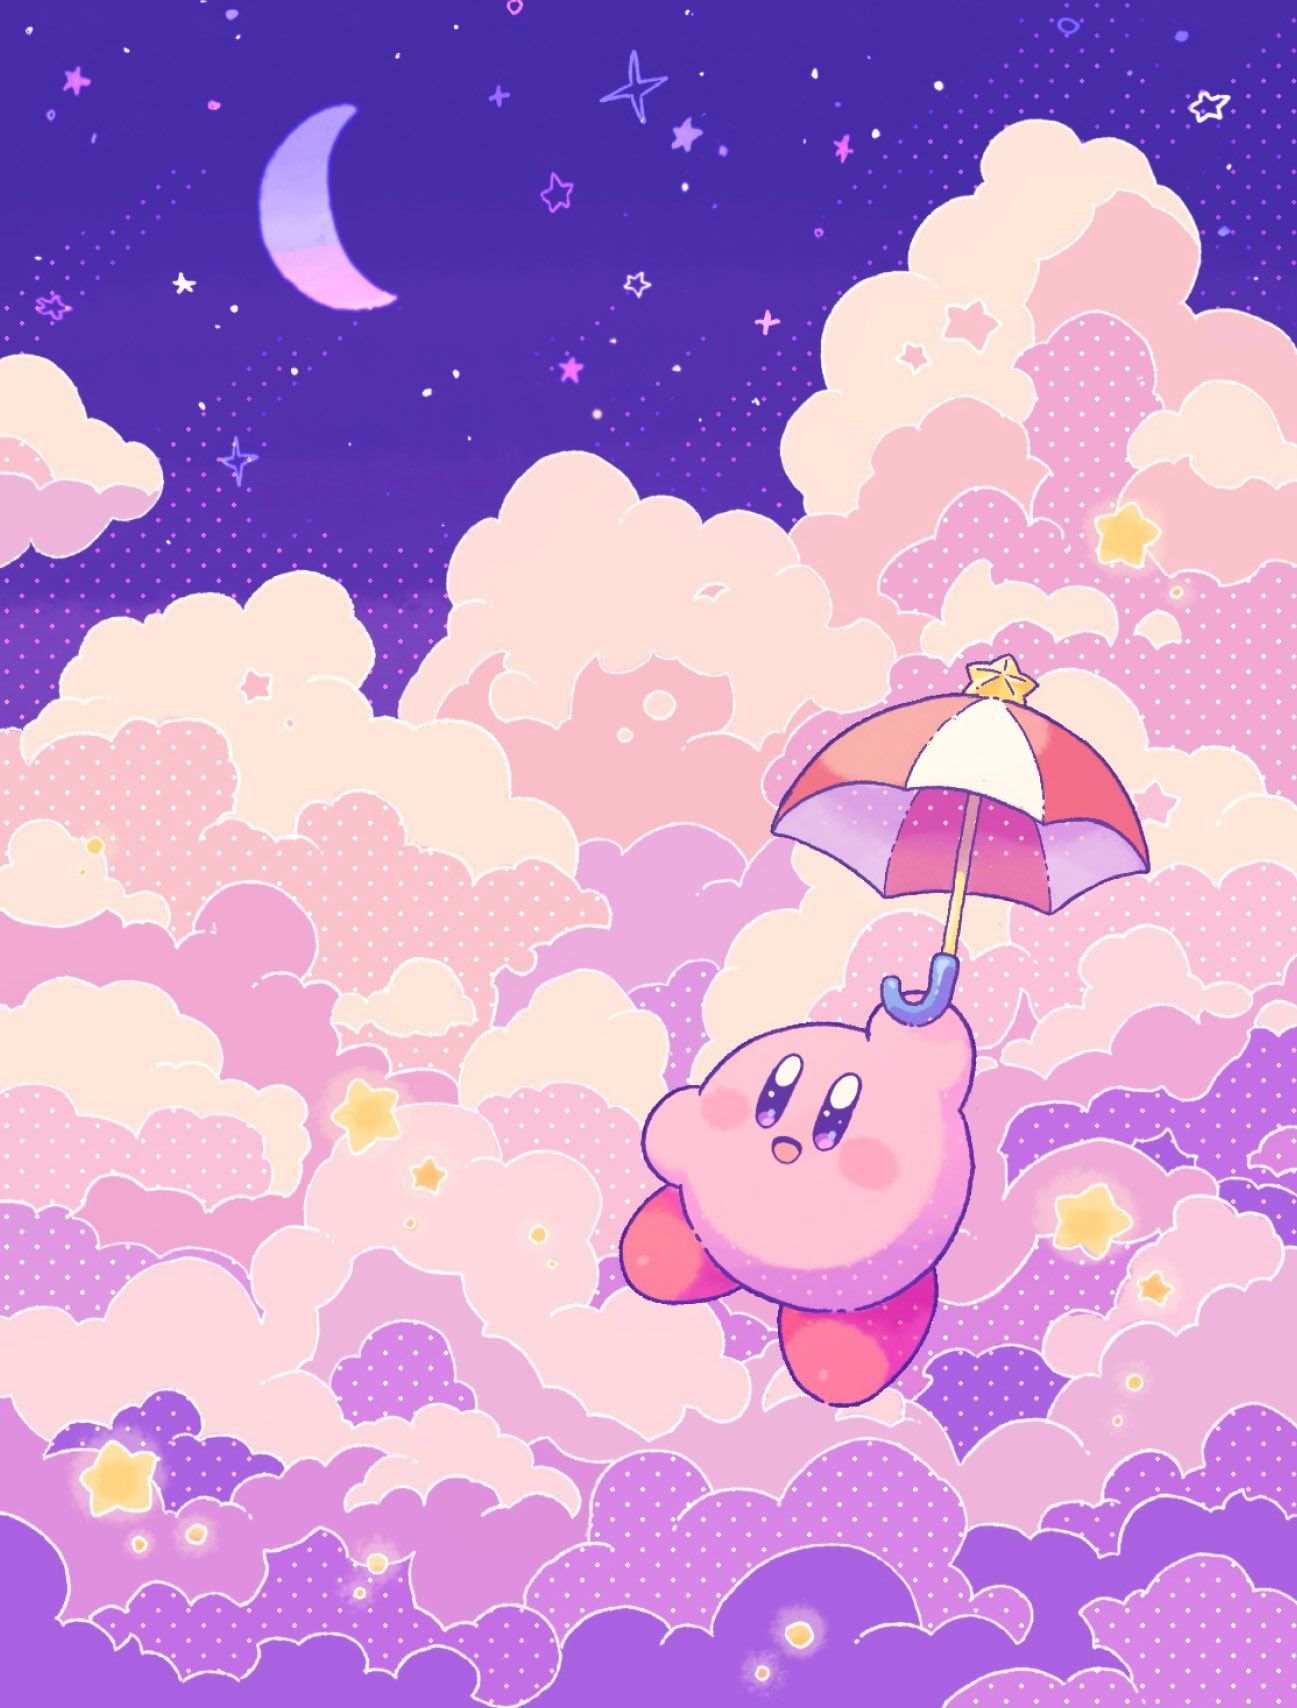 Kirby Fondo De Pantalla Kirby Wallpaper Background 画像あり